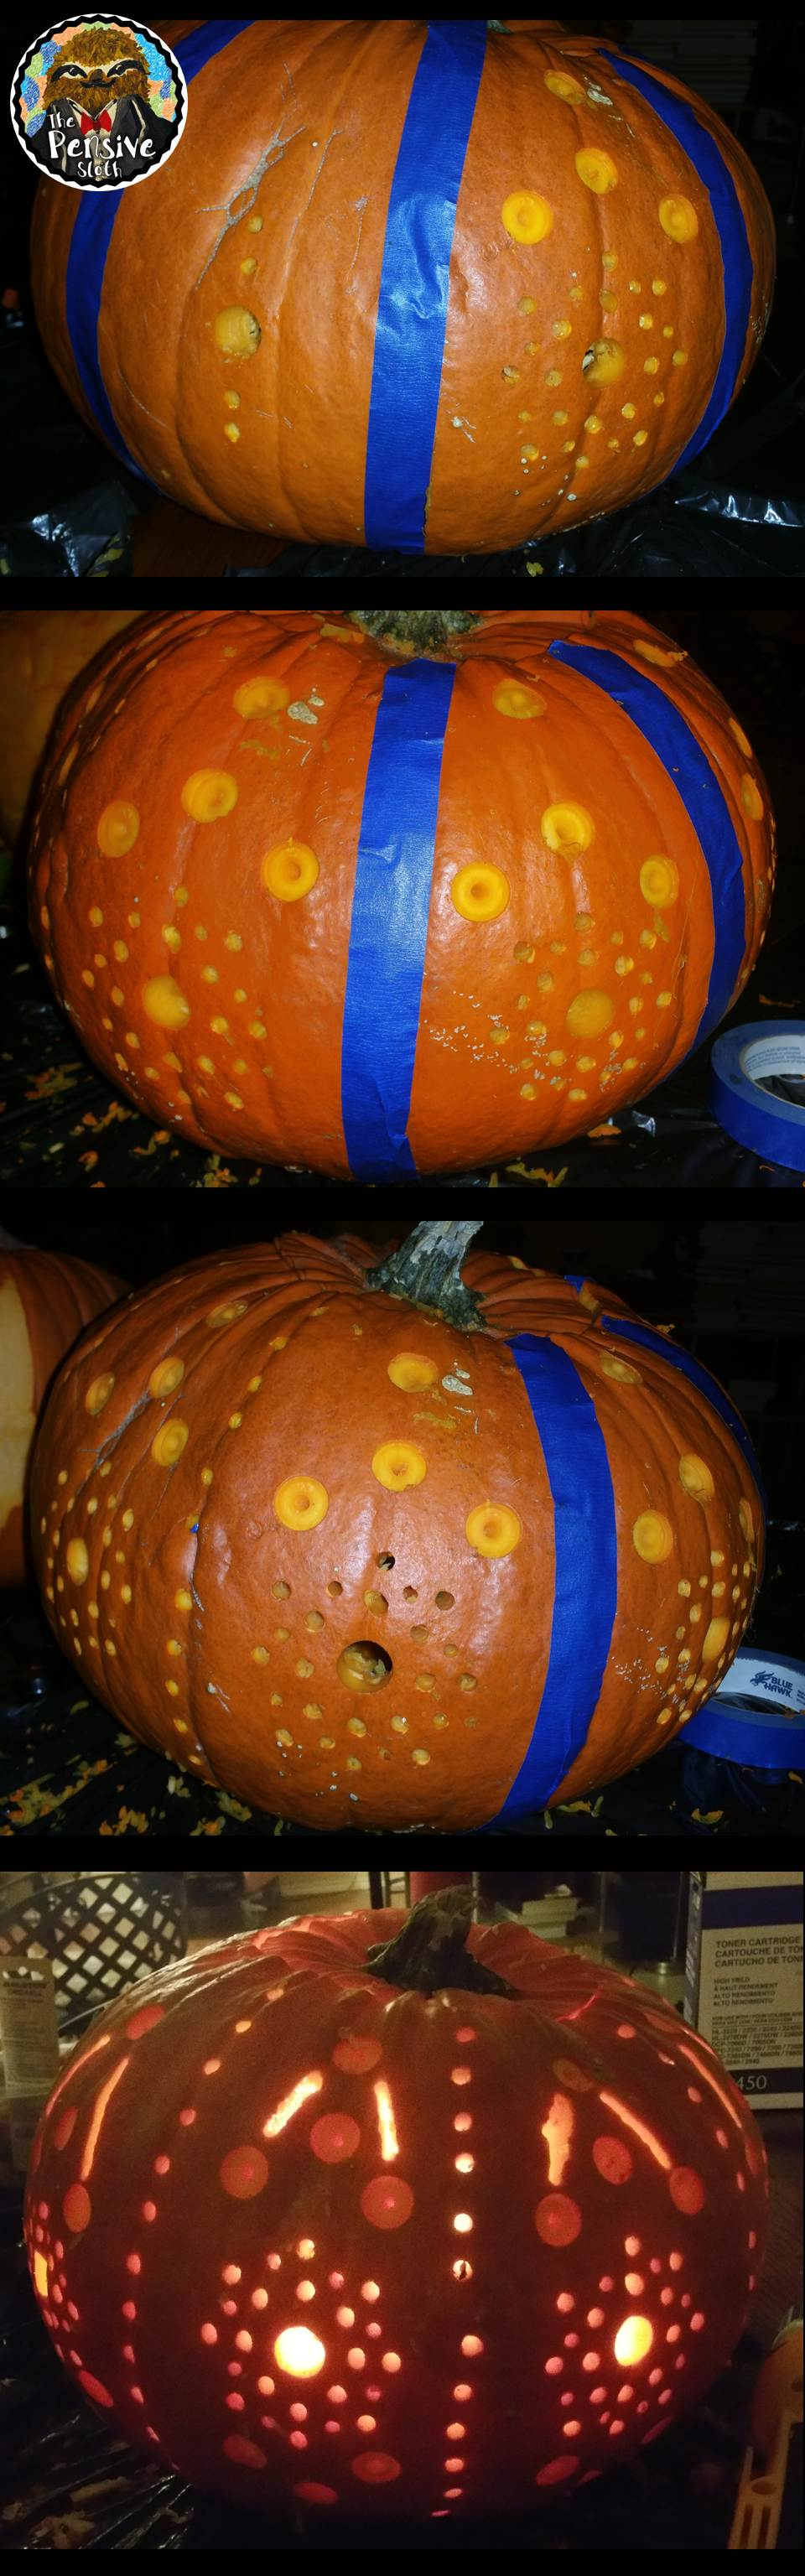 5 Things That Happen When You Drill a Pumpkin | The ...